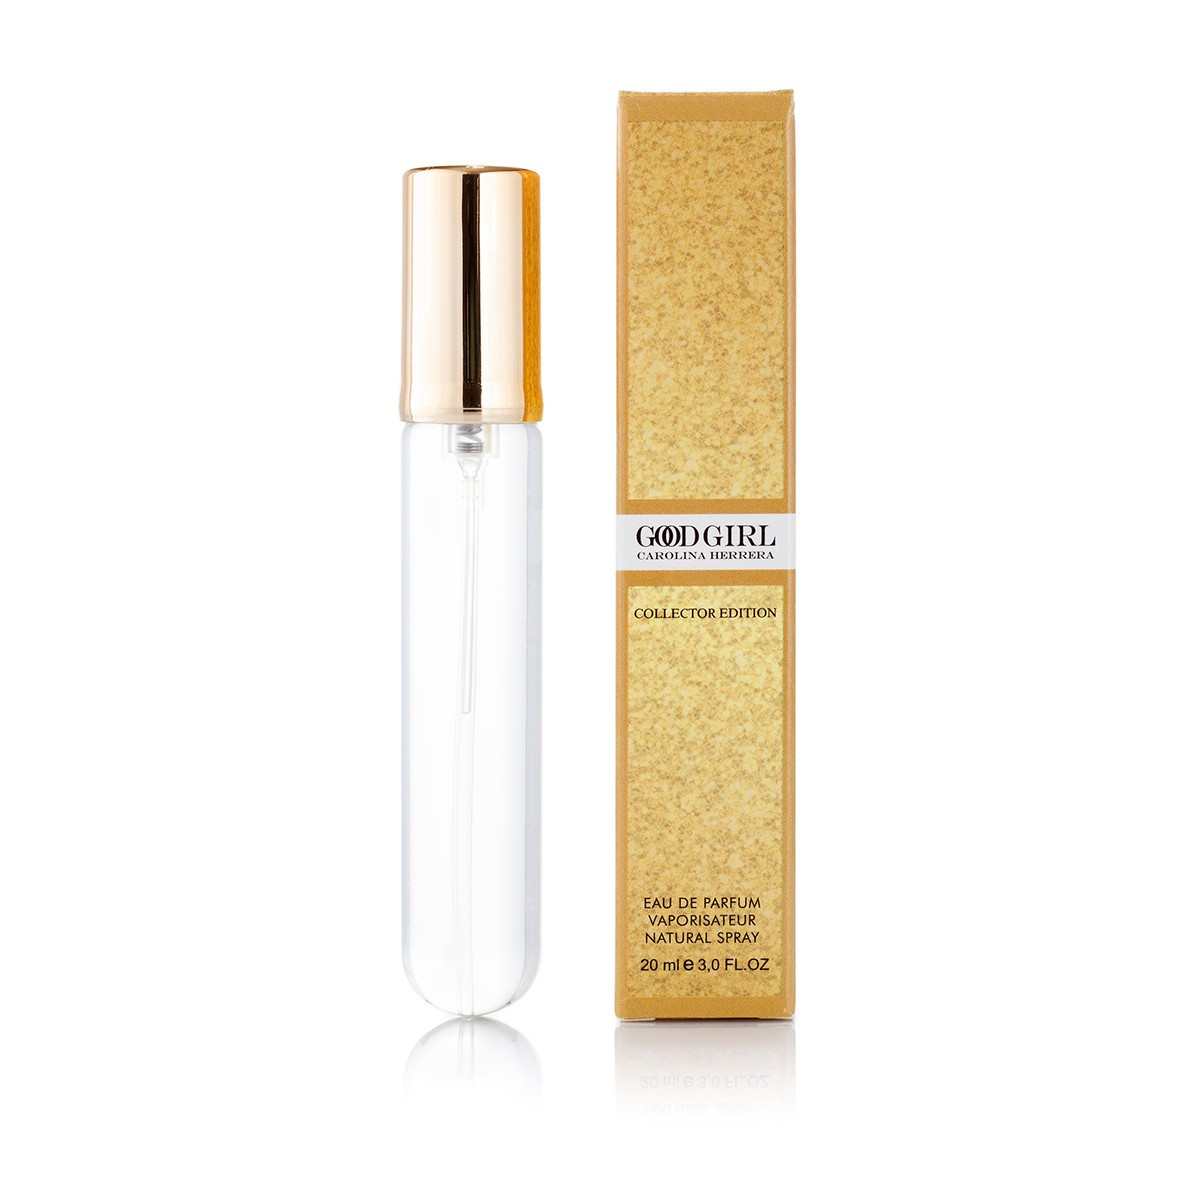 Carolina Herrera Good Girl Collector Edition Gold - Parfum Stick 20ml